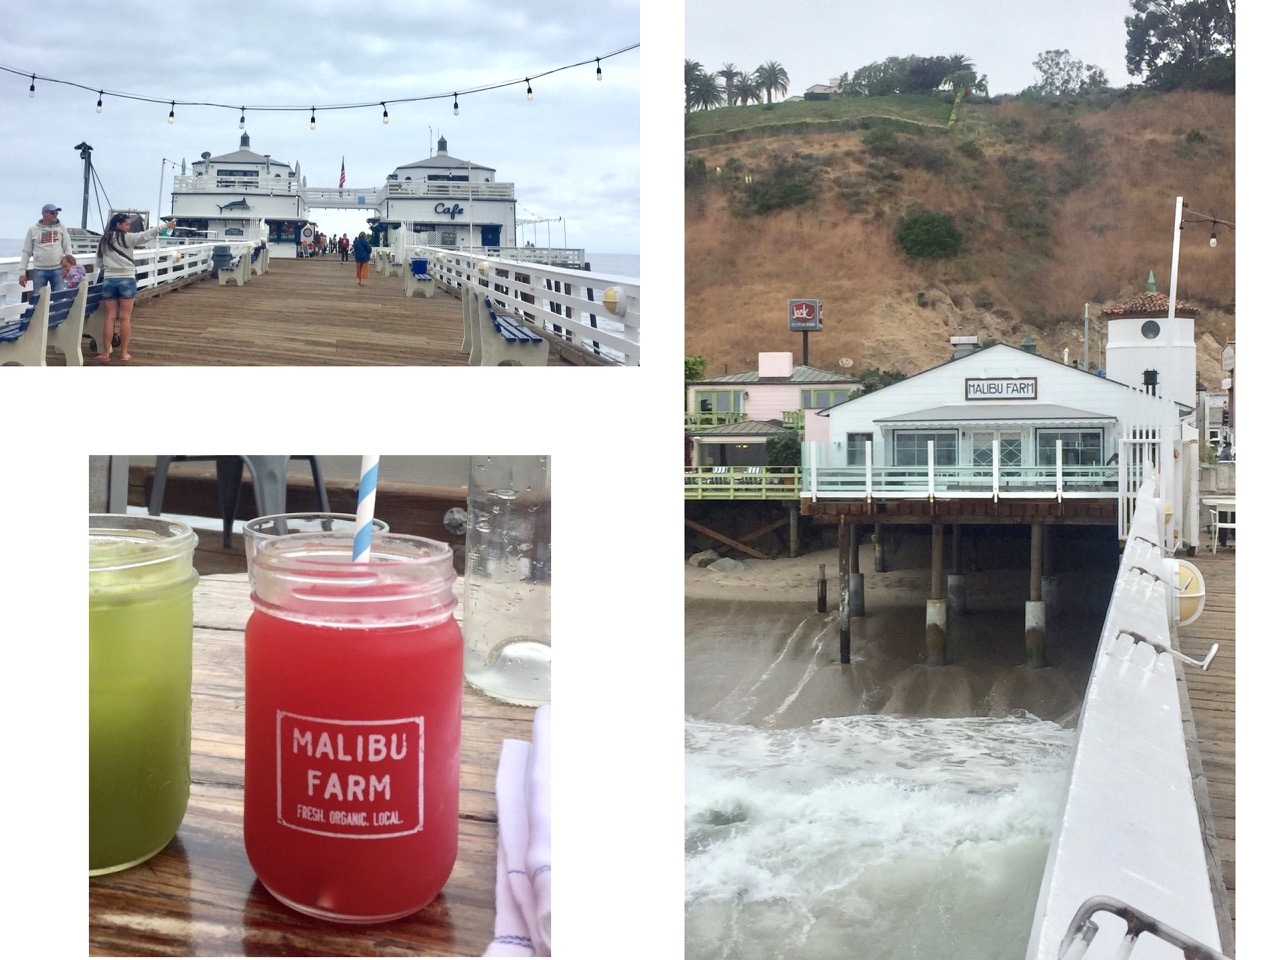 malibu,james perse,shopping,fashion,decoration,inspiration,califronie,aliceetfantomette,aliceetfantometteencalifornie,travel,voyage,travel guide,heidi derrick,hmerrick ,malibu farm,malibu piers